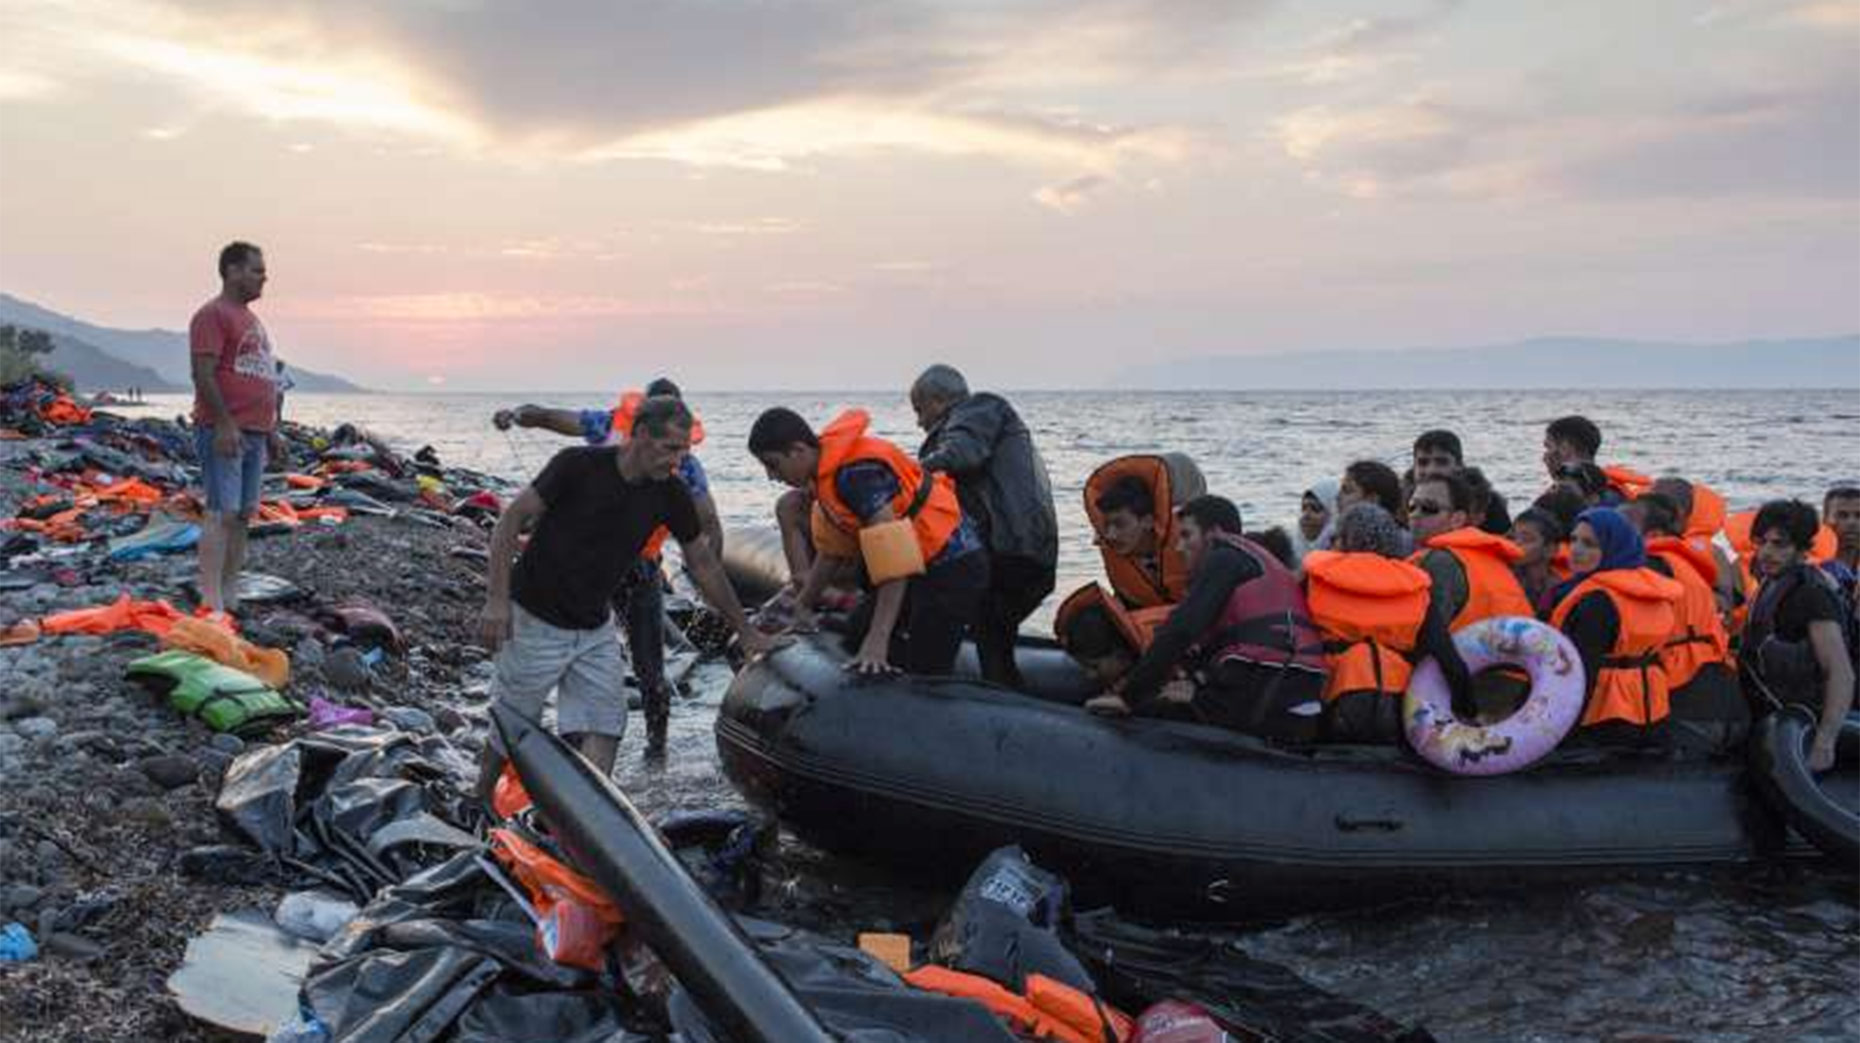 the role of the albanian in the syrian refugee crisis Host countries continue to push syrian refugees to return, employing  of syrians  video: russia's role in syria: perspectives from the ground and next steps.